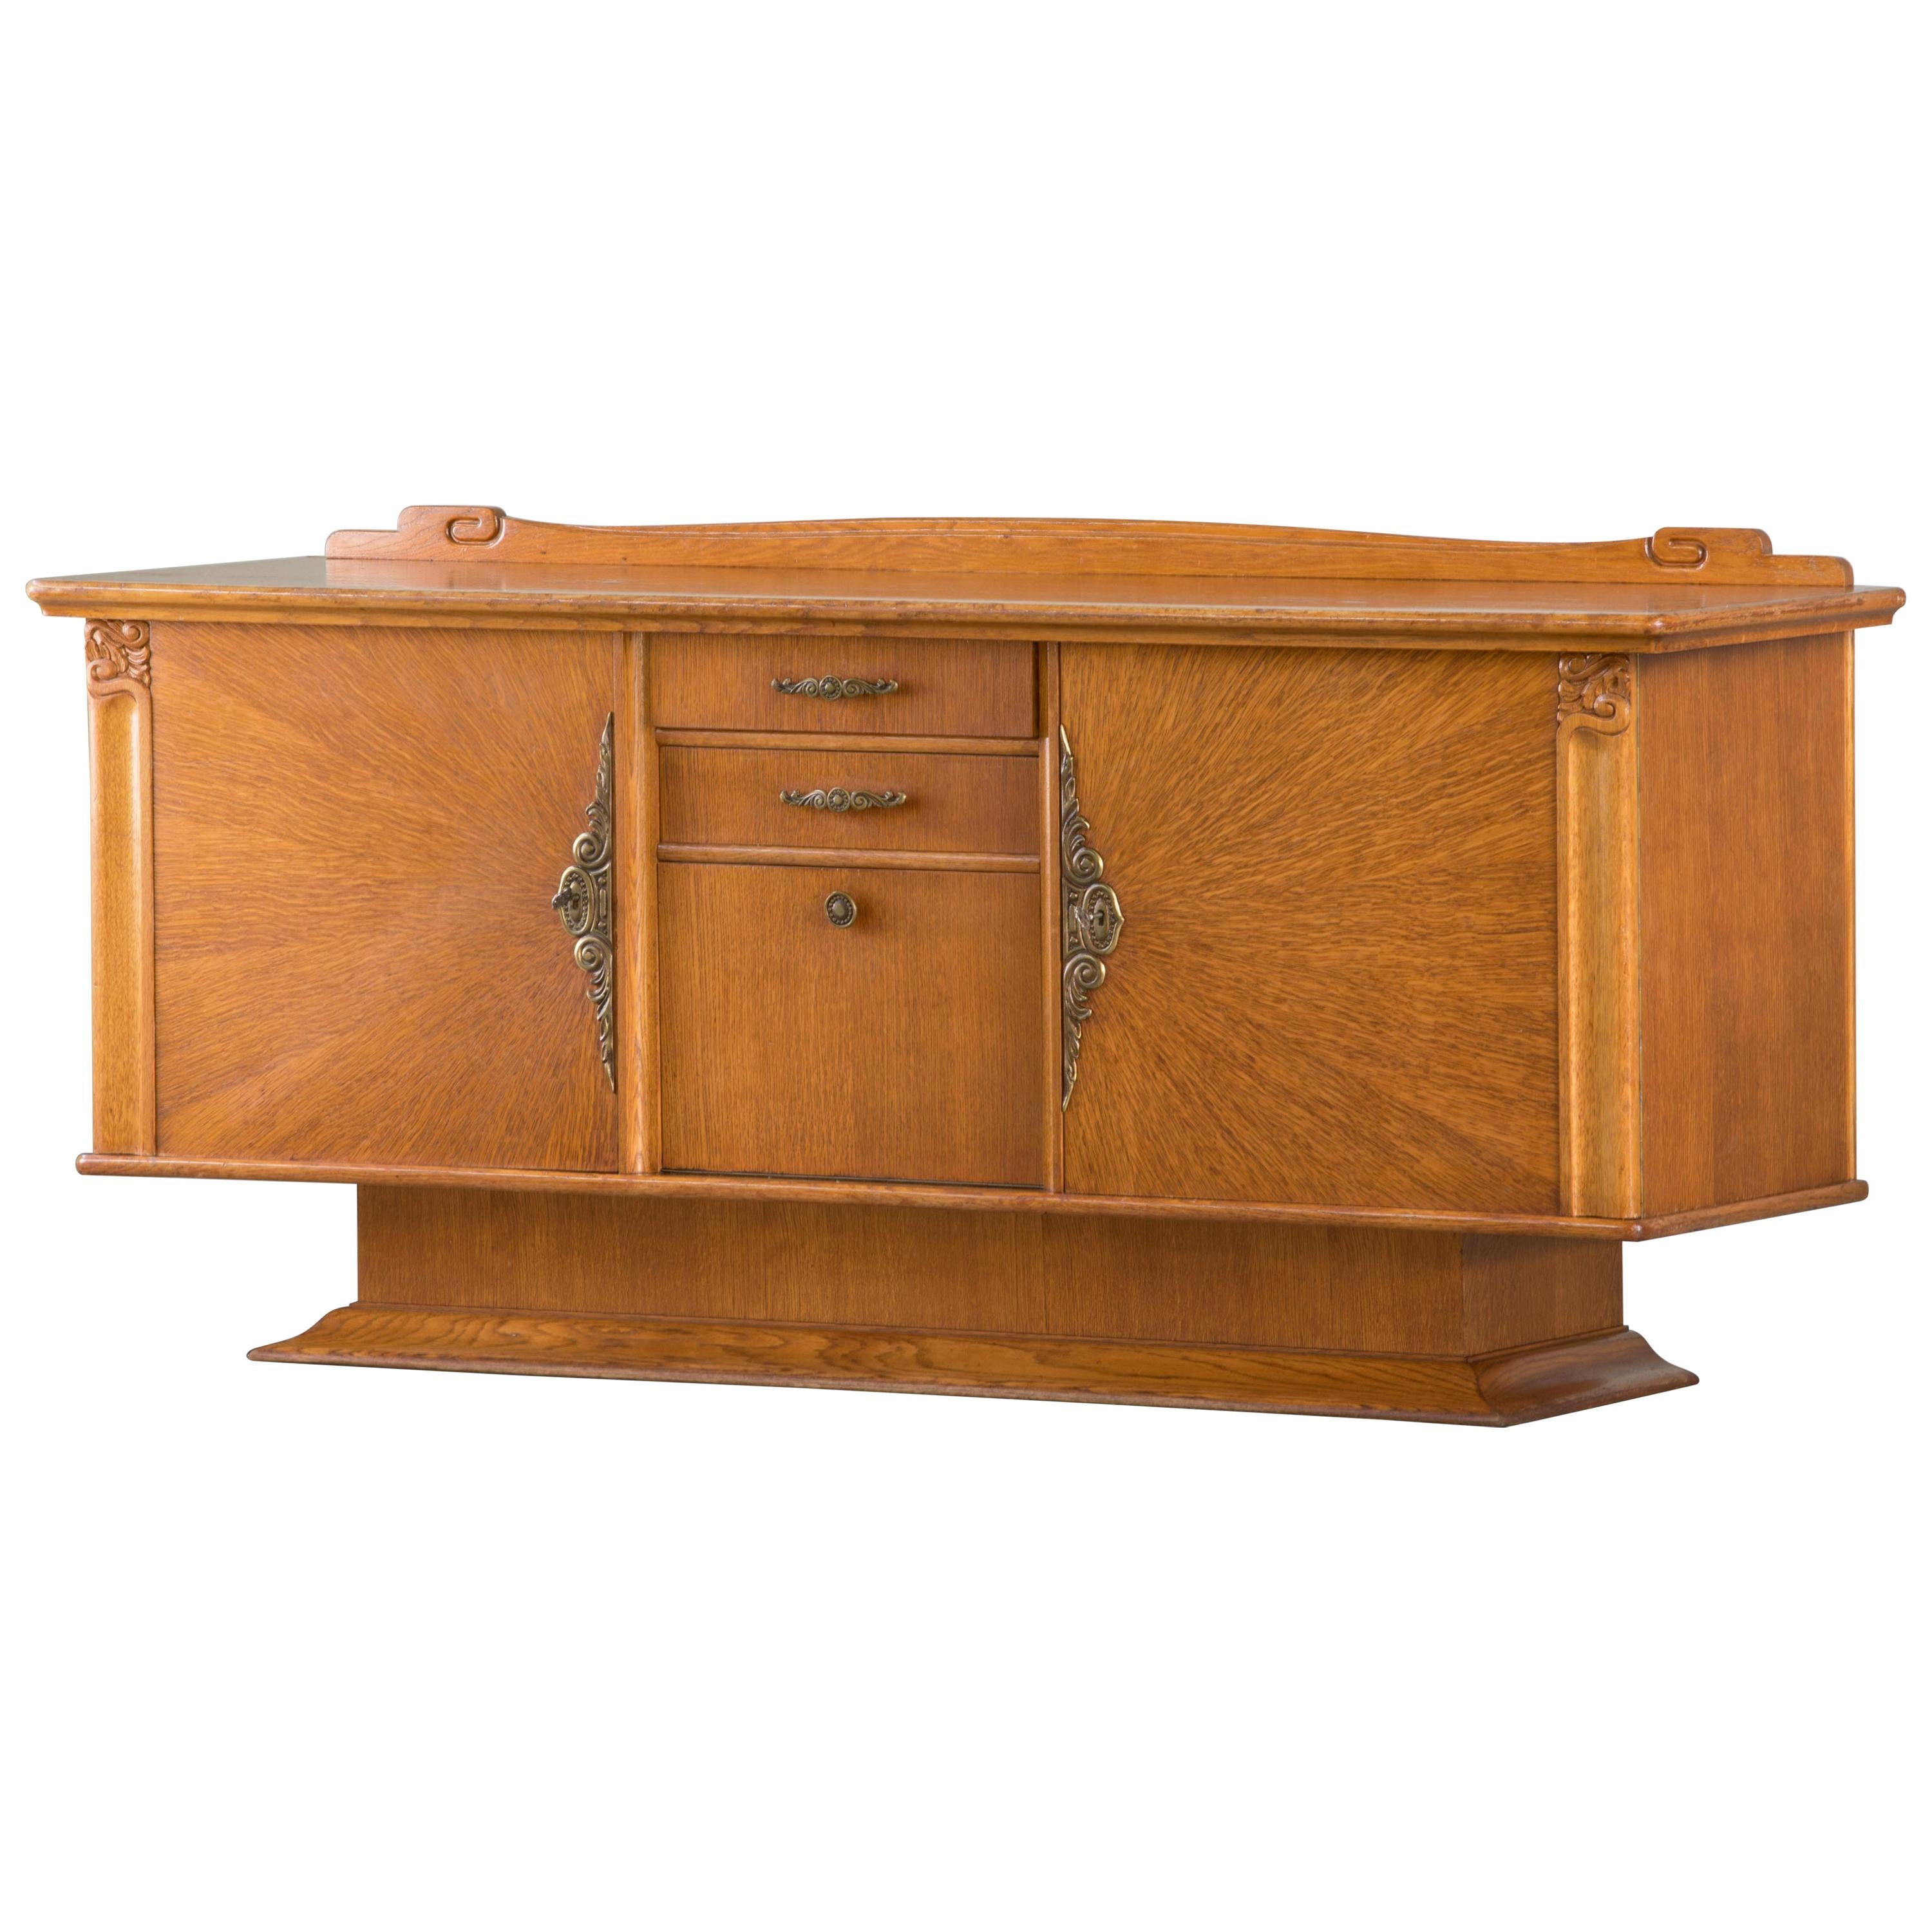 French Art Deco Sideboard with French Art Veneer, 1940s